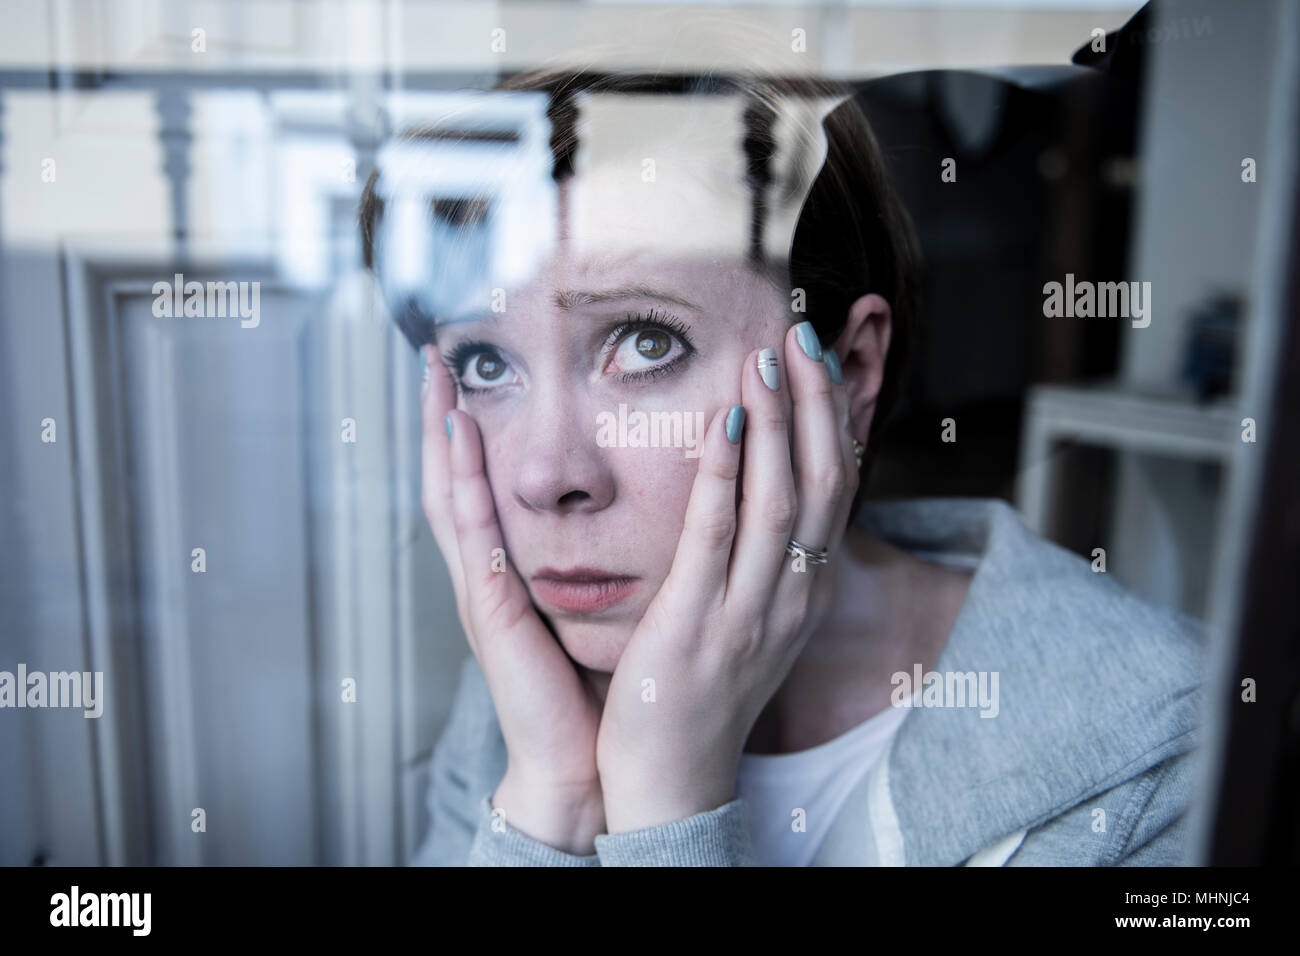 young beautiful depressed unhappy caucasian woman looking worried and sad through the window at home. feeling worthless and in pain. closeup. Depressi Stock Photo